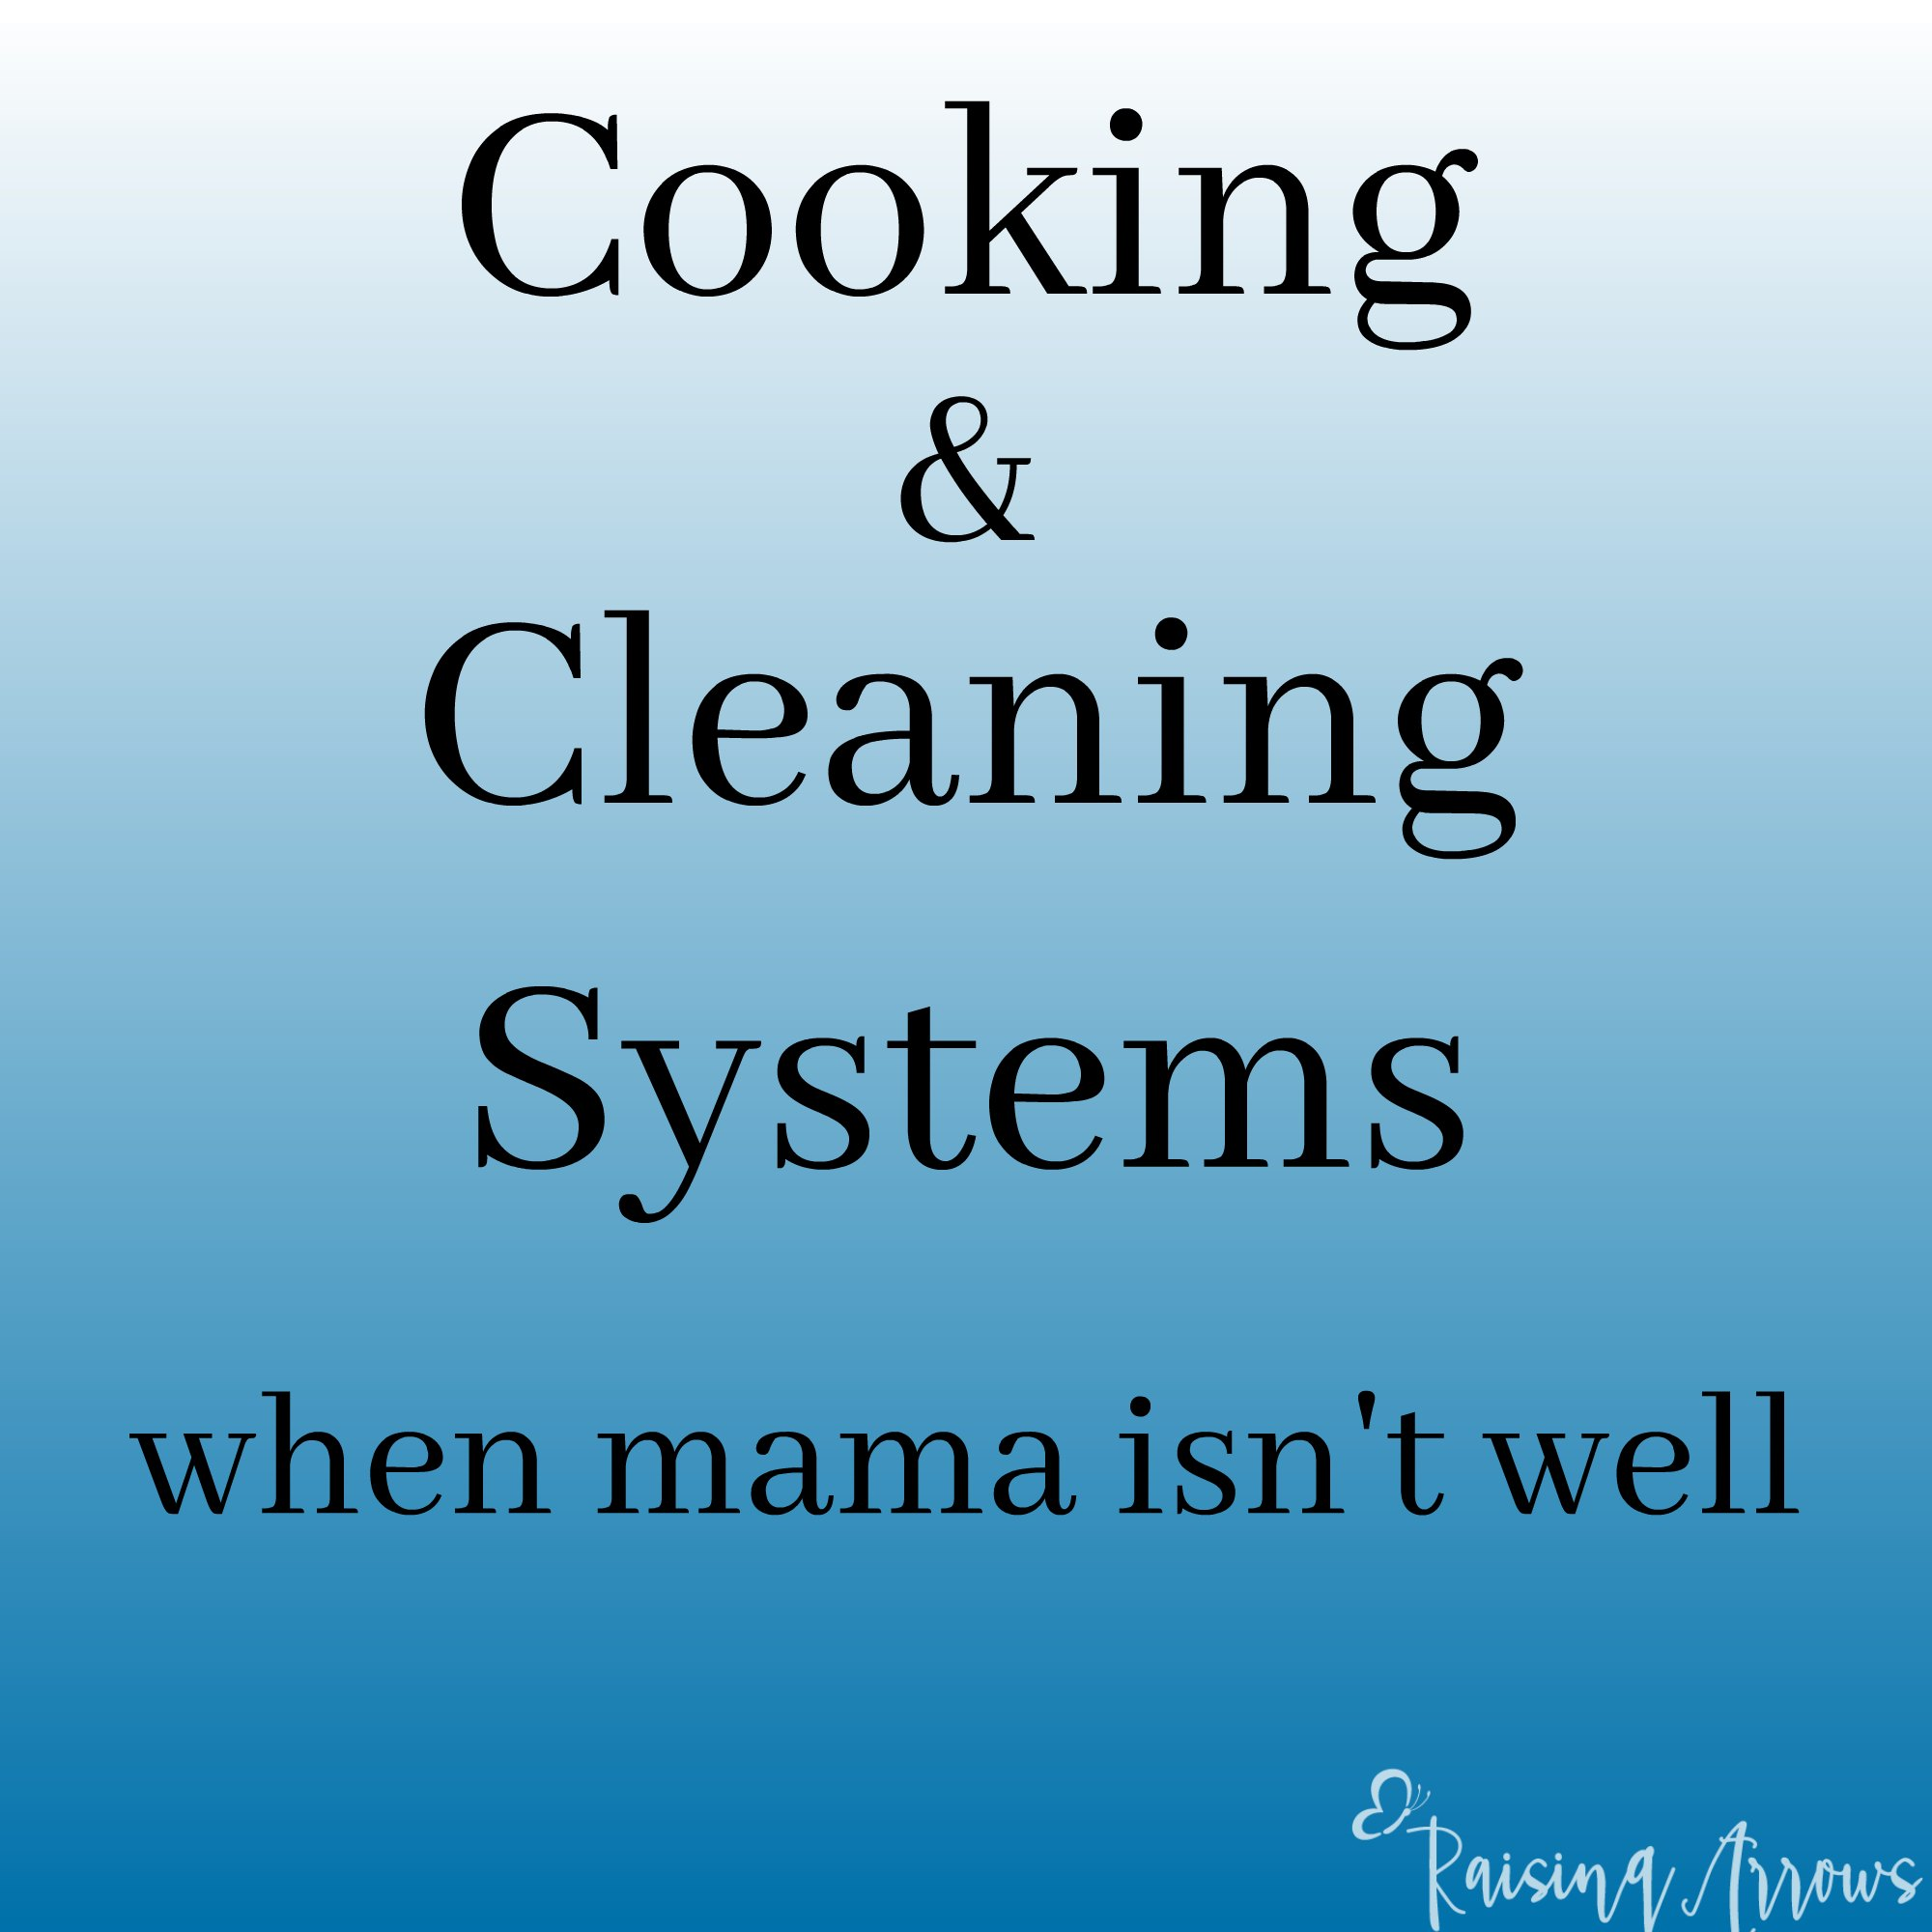 How do you keep the house running when you aren't feeling well? Use these cooking and cleaning systems from RaisingArrows.net!